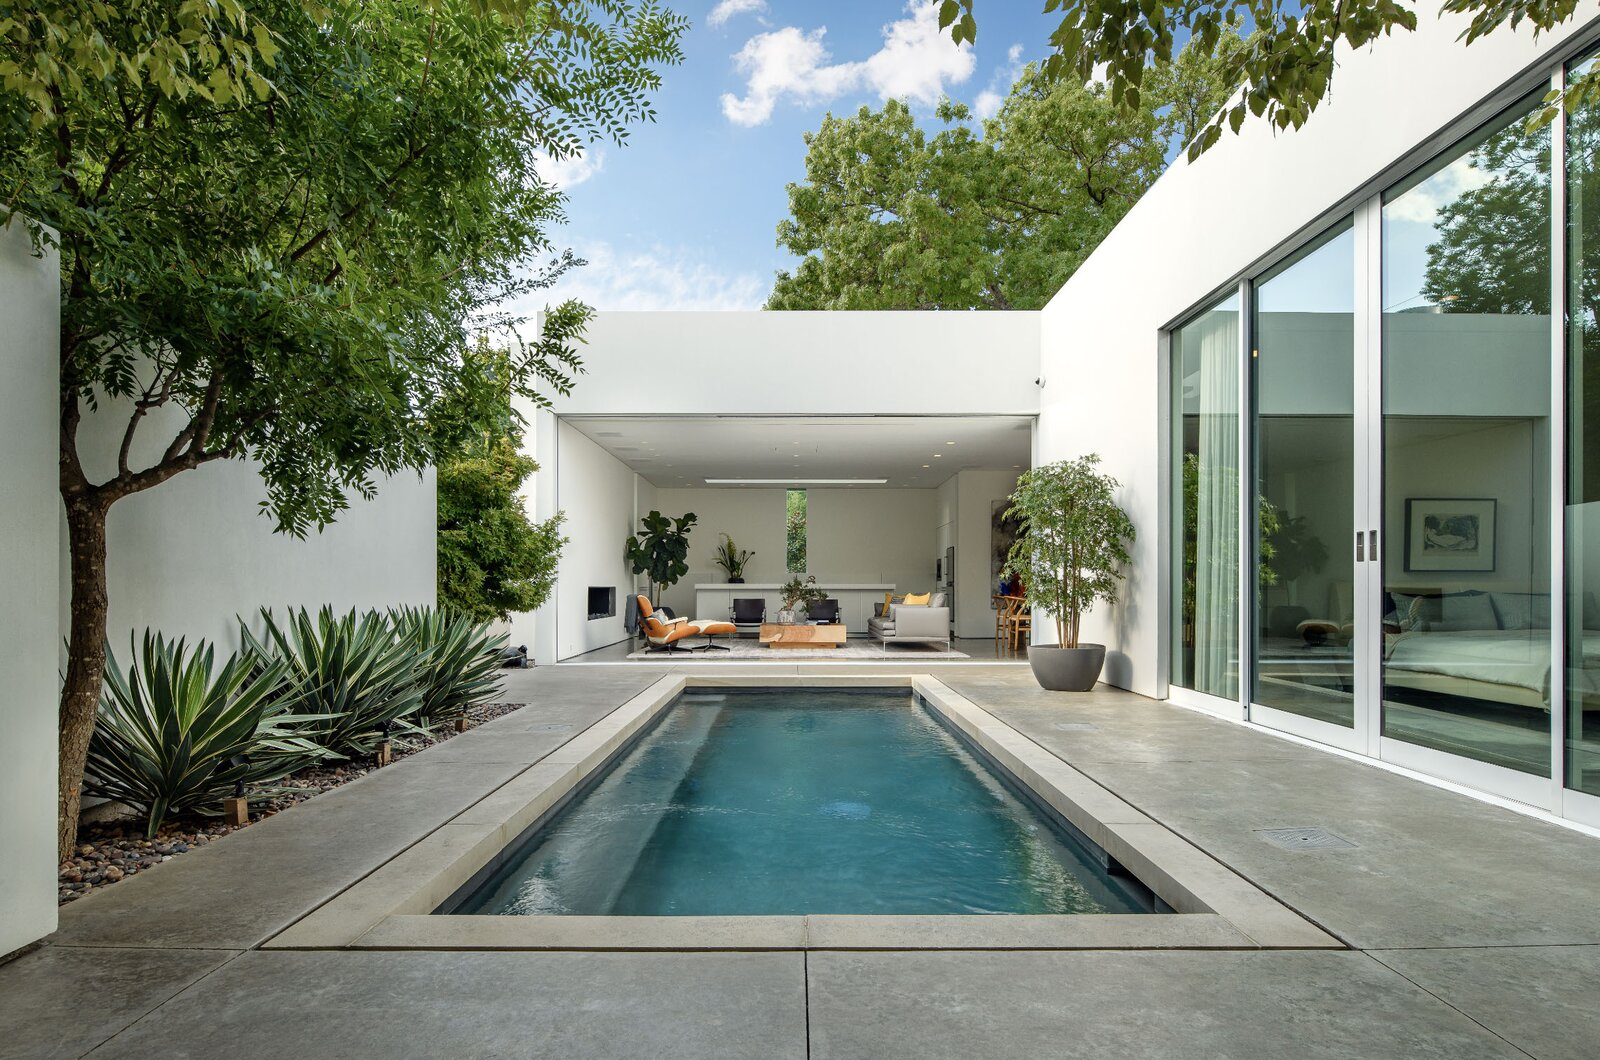 Outside, the enclosed patio and inviting pool provide a private urban oasis for new buyers.